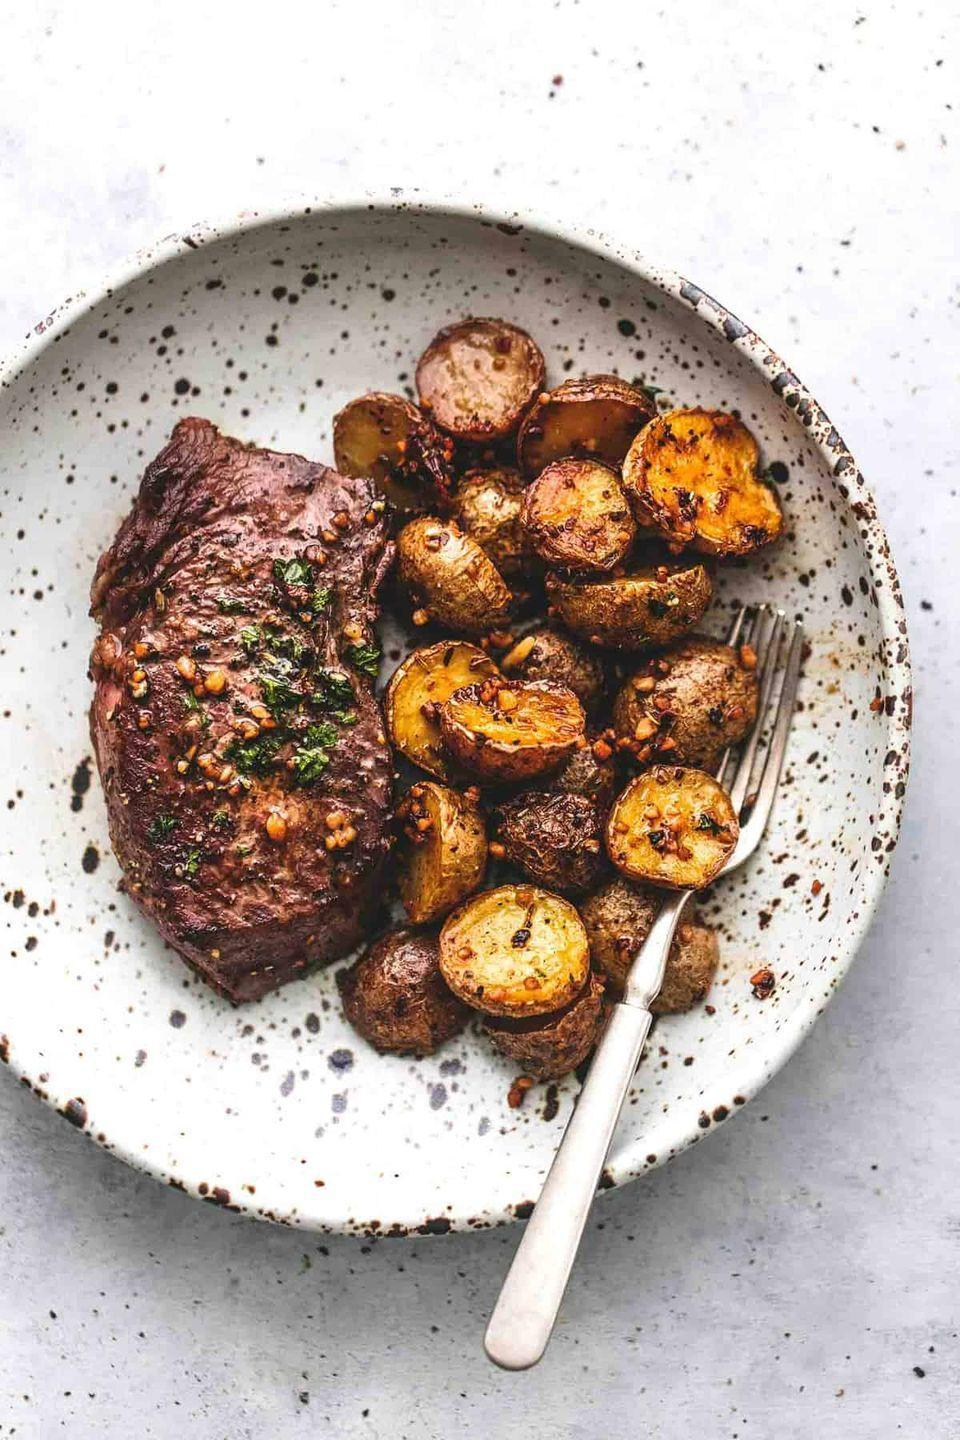 """<p>There's one thing better than a well-cooked steak and a side of crunchy potatoes: being able to say you cooked them both in one pan!</p><p><strong>Get the recipe at <a href=""""https://www.lecremedelacrumb.com/garlic-butter-steak-and-potatoes-skillet/"""" rel=""""nofollow noopener"""" target=""""_blank"""" data-ylk=""""slk:Creme de la Crumb"""" class=""""link rapid-noclick-resp"""">Creme de la Crumb</a>.</strong></p><p><a class=""""link rapid-noclick-resp"""" href=""""https://go.redirectingat.com?id=74968X1596630&url=https%3A%2F%2Fwww.walmart.com%2Fbrowse%2Fhome%2Fthe-pioneer-woman-dishes%2F4044_623679_639999_7373615&sref=https%3A%2F%2Fwww.thepioneerwoman.com%2Ffood-cooking%2Fmeals-menus%2Fg35191871%2Fsteak-dinner-recipes%2F"""" rel=""""nofollow noopener"""" target=""""_blank"""" data-ylk=""""slk:SHOP DISHES"""">SHOP DISHES</a><br></p>"""